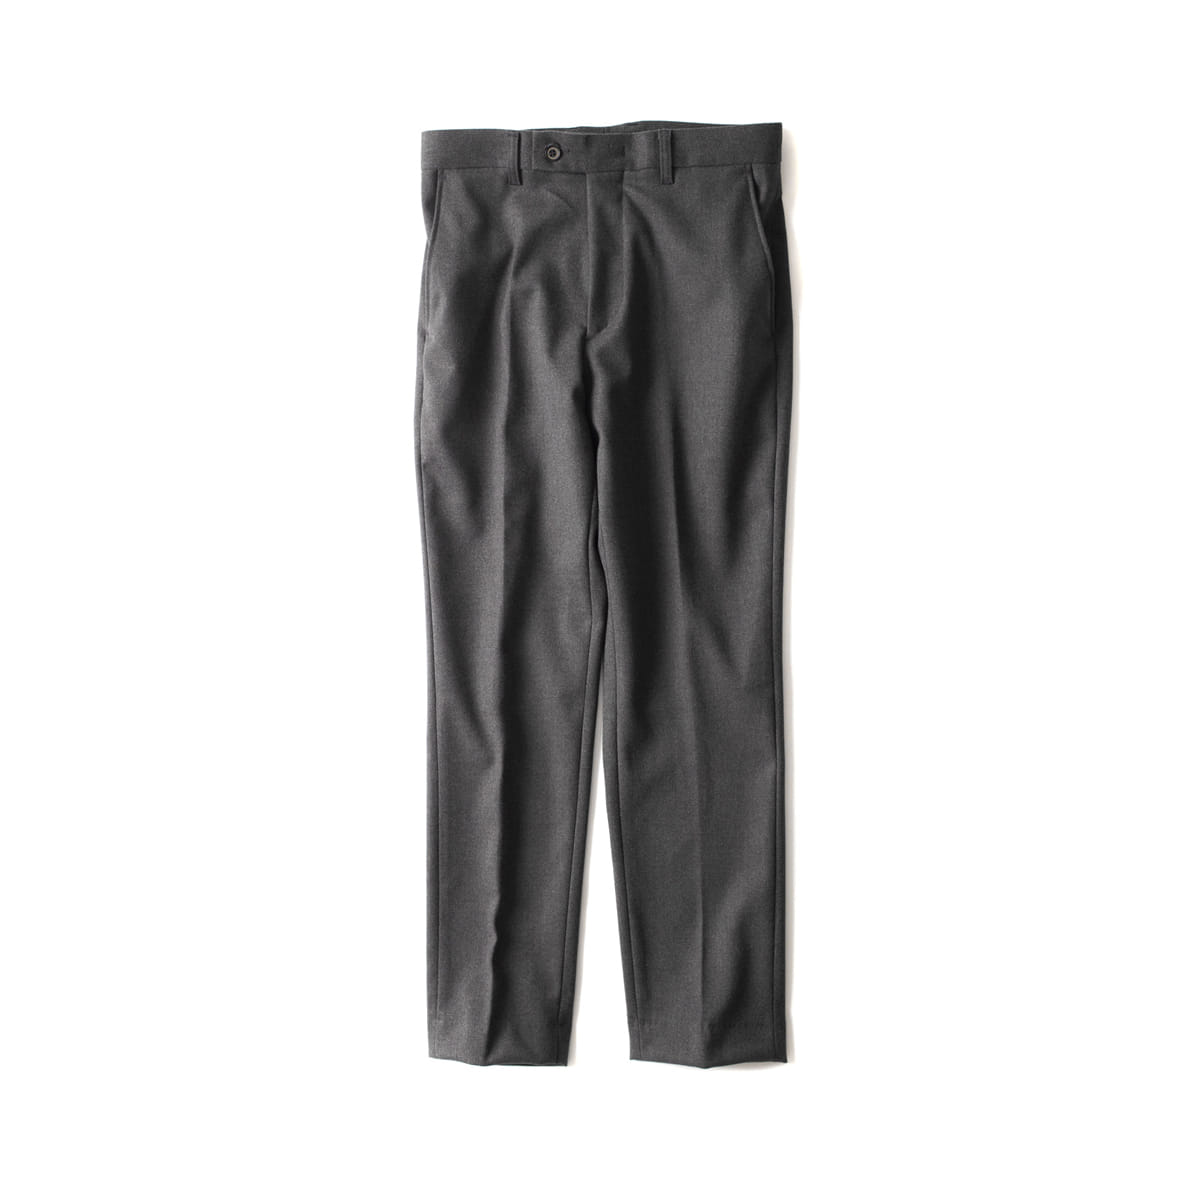 [BIRTHDAYSUIT] DAILY SUIT PANTS 'CHARCOAL'